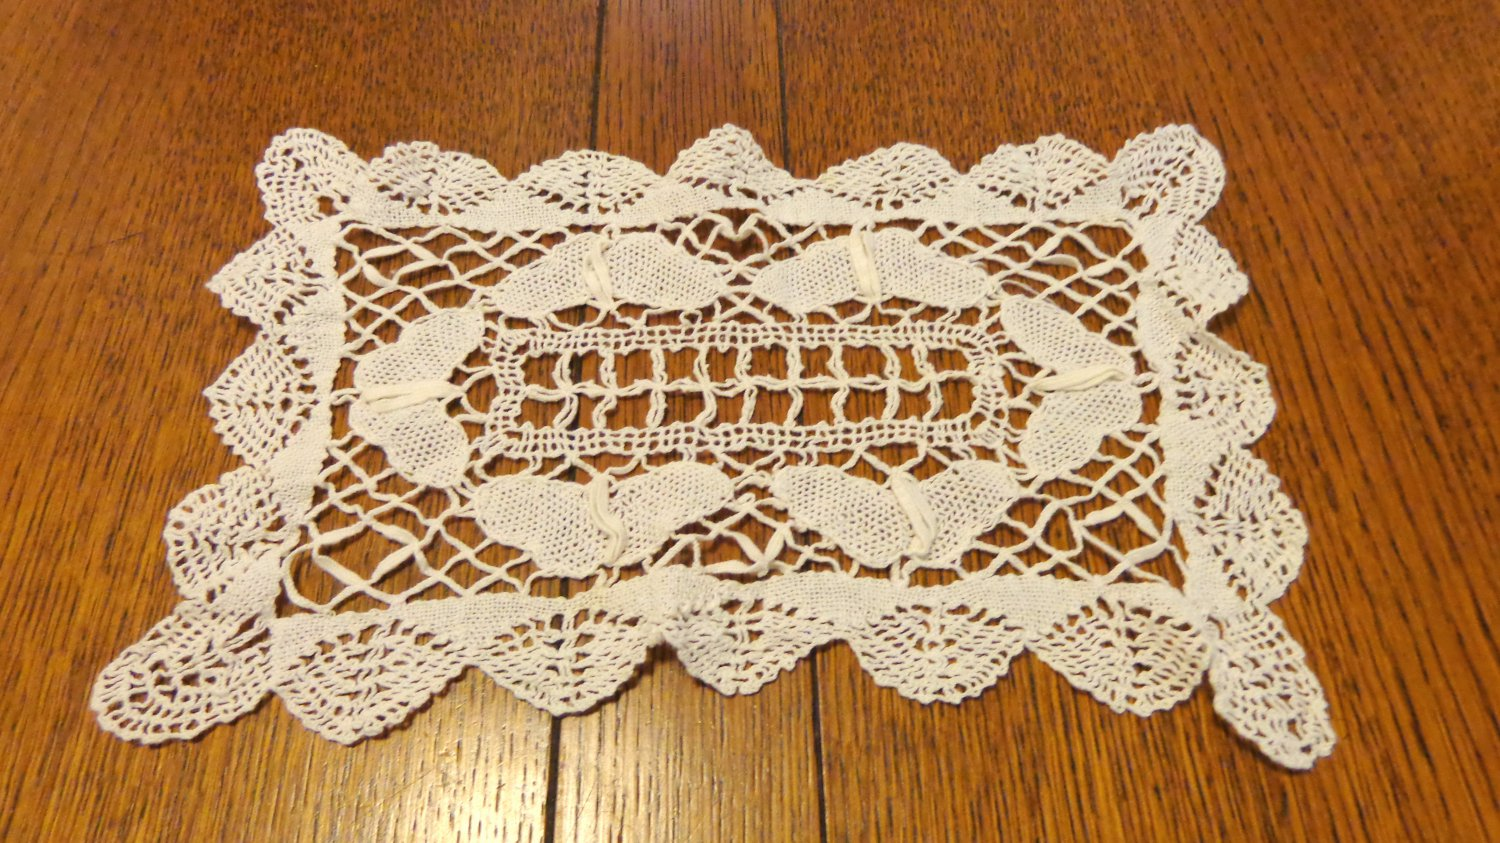 11 inch bobbin lace doily rectangular white wispy spotless perfect vintage hc345